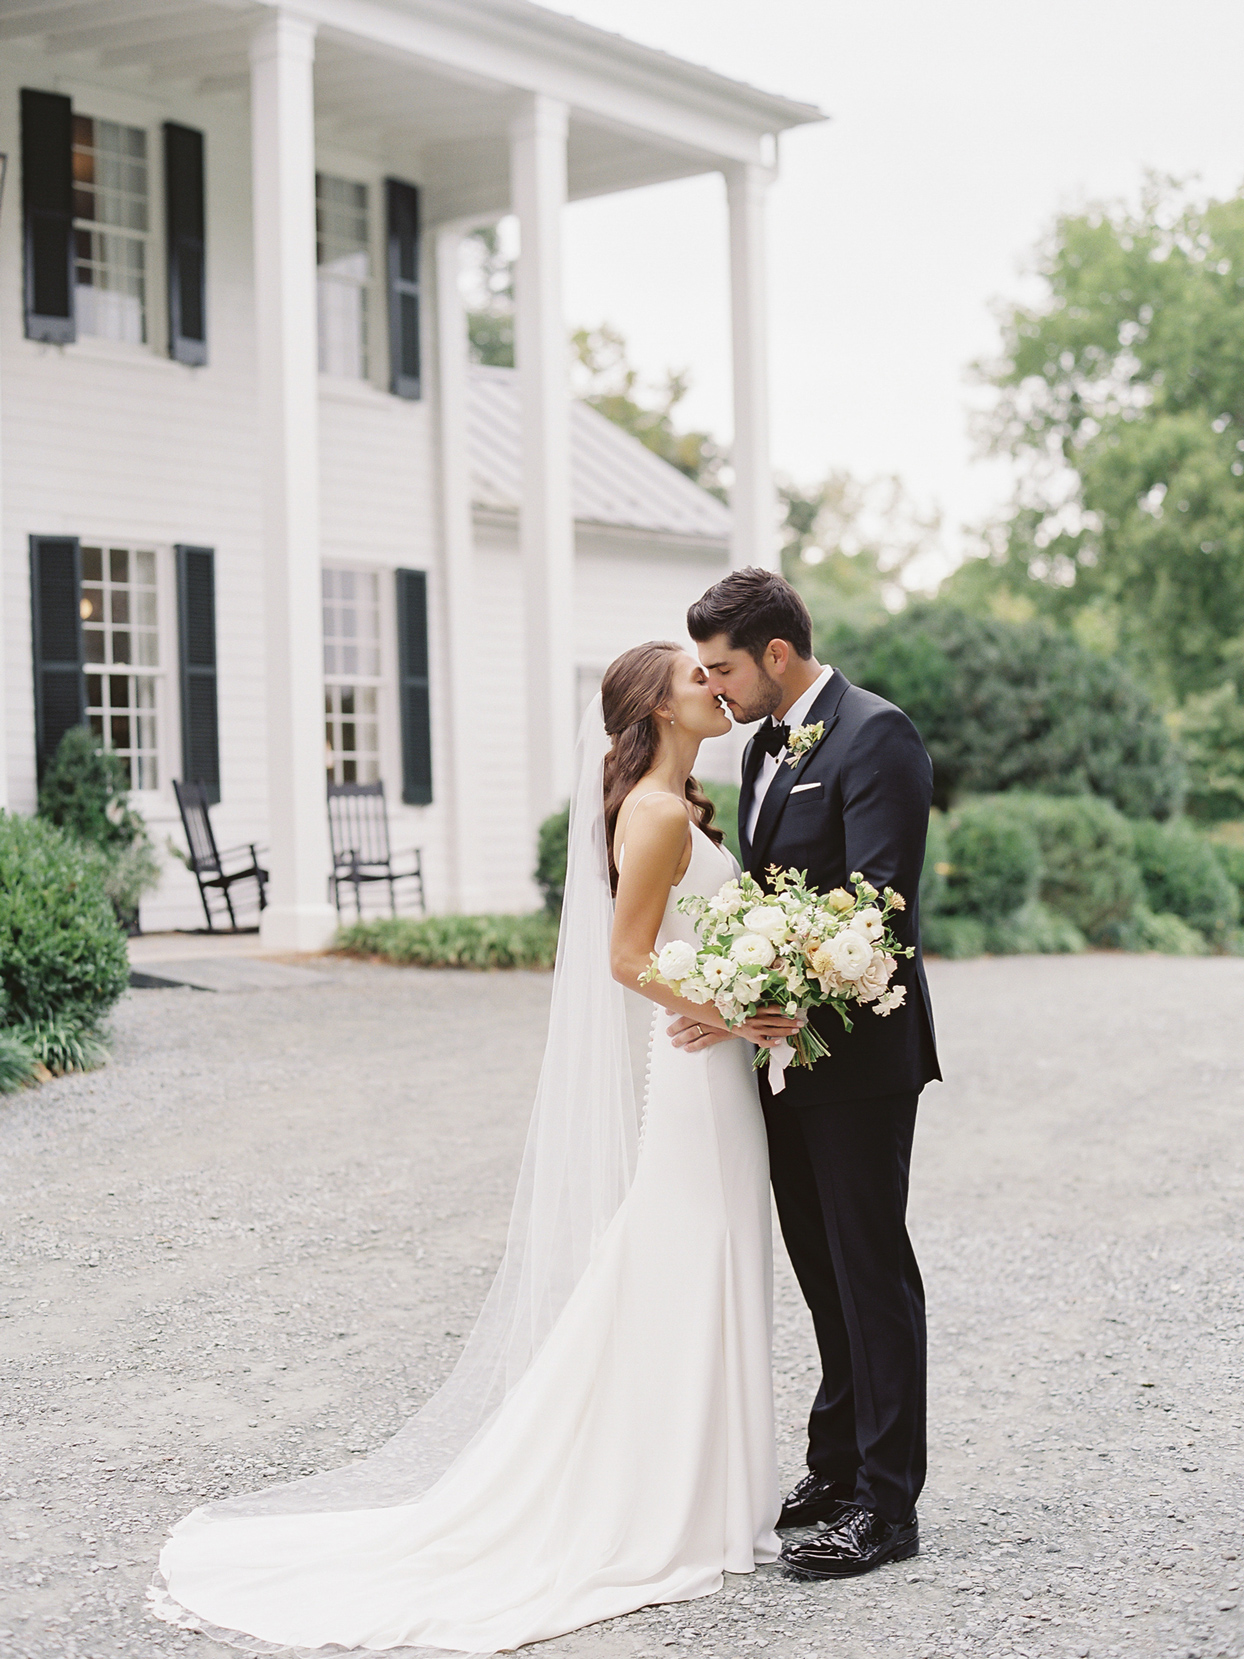 Bride and groom kissing in front of white house